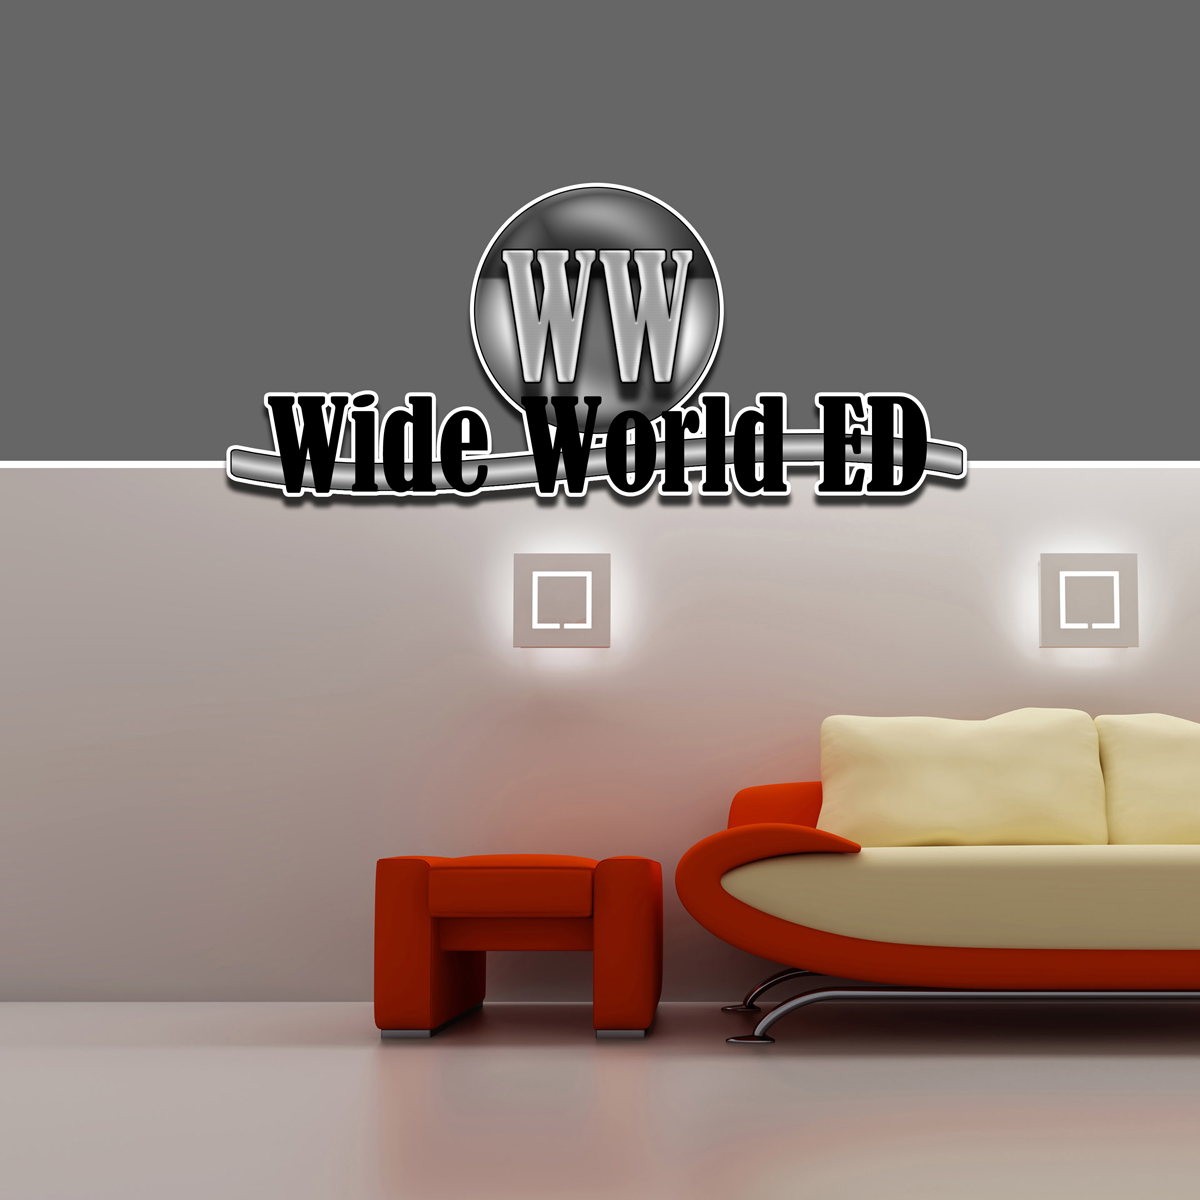 Logo Design by MITUCA ANDREI - Entry No. 13 in the Logo Design Contest New Logo Design for Wide World Ed.